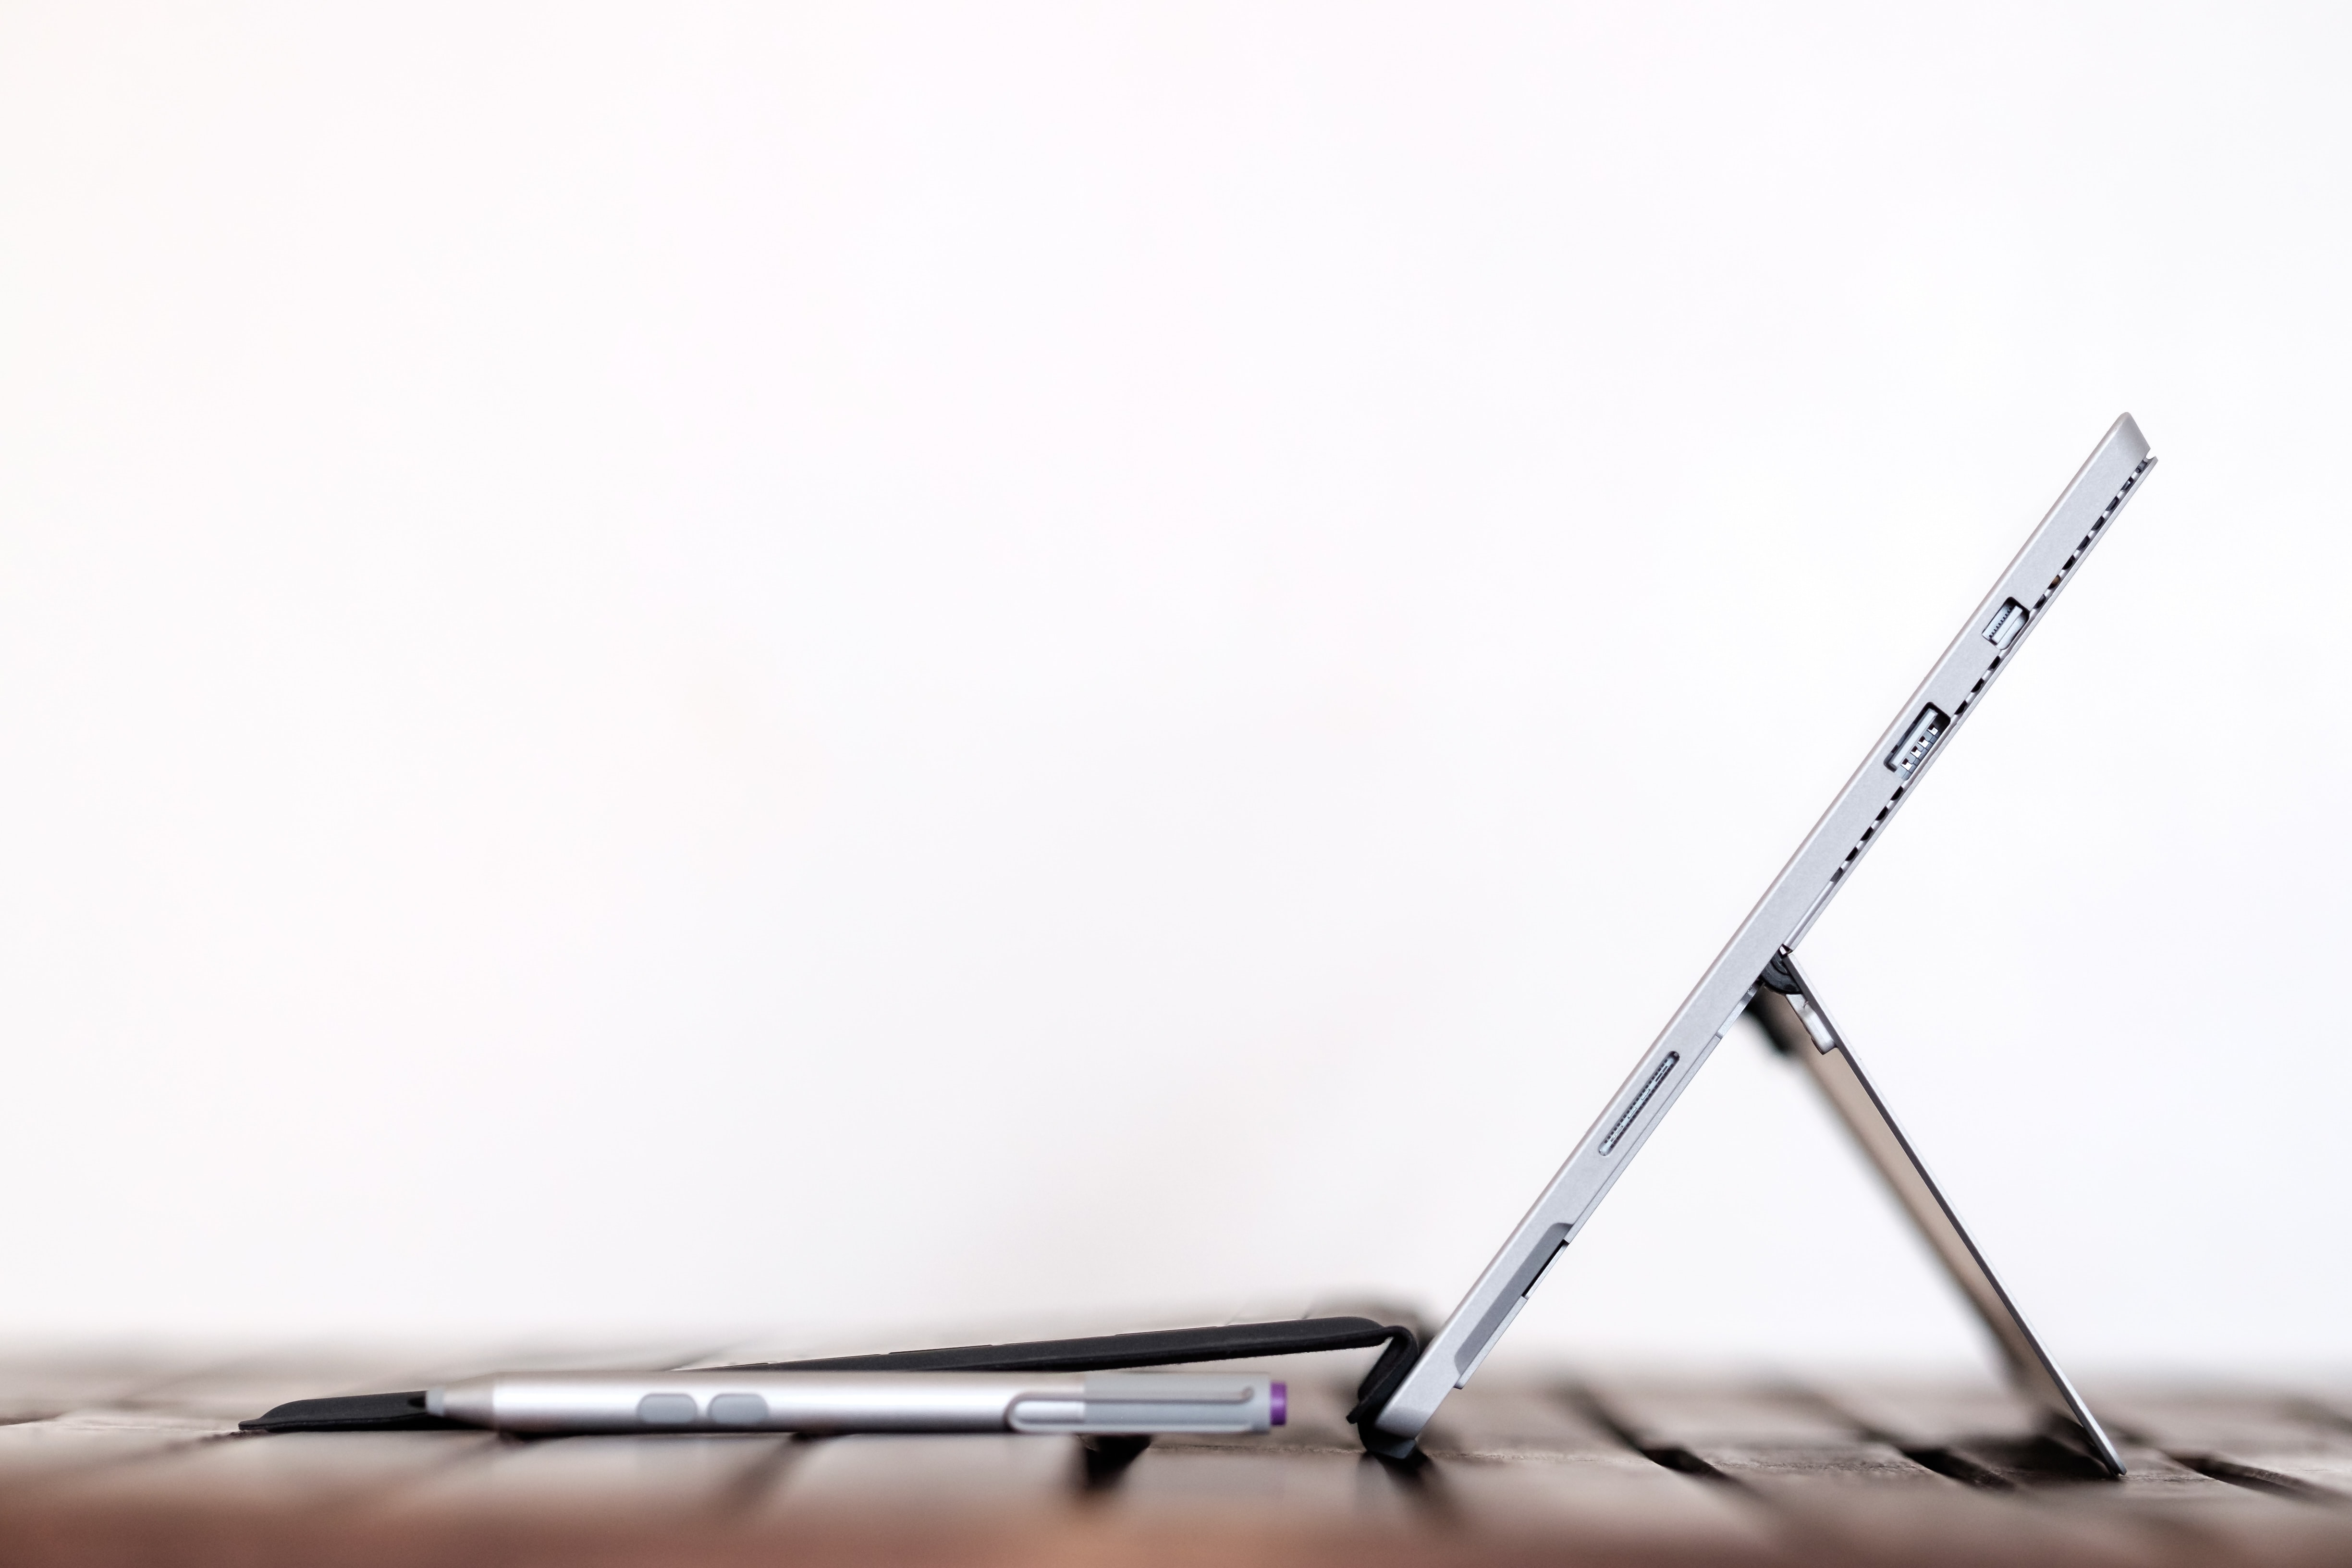 A side view of a detachable notebook with a stylus